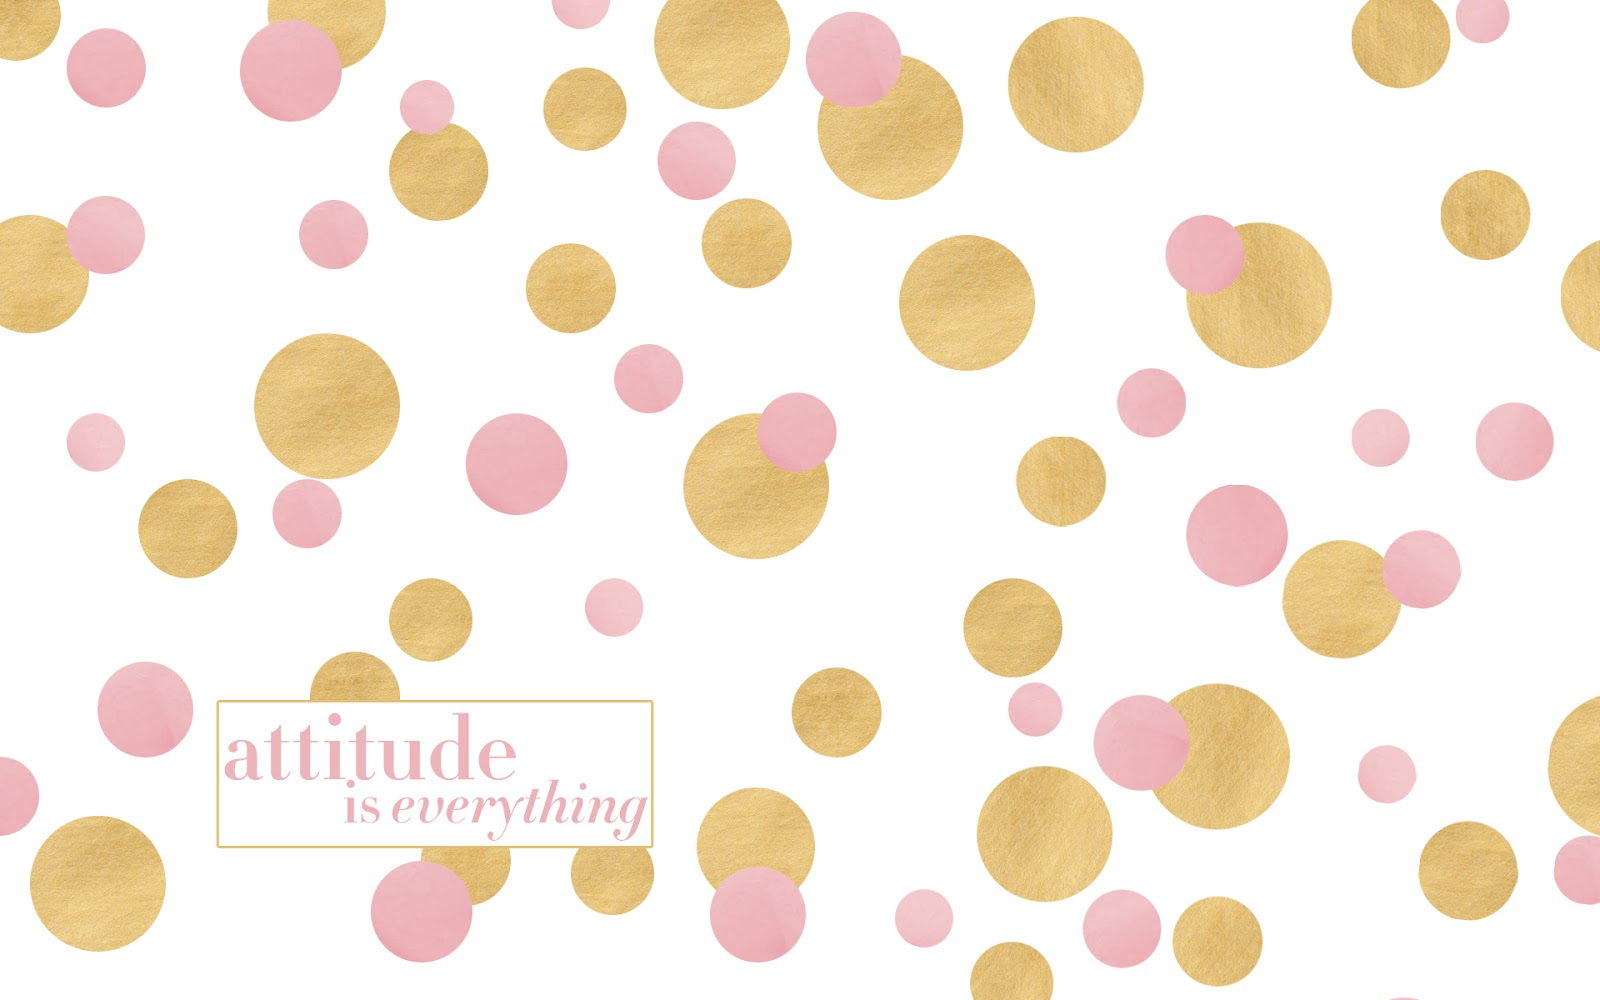 Kate Spade Quotes Kate Spade Quote Wallpaper Pc Kate Spade Quote Wallpaper Most